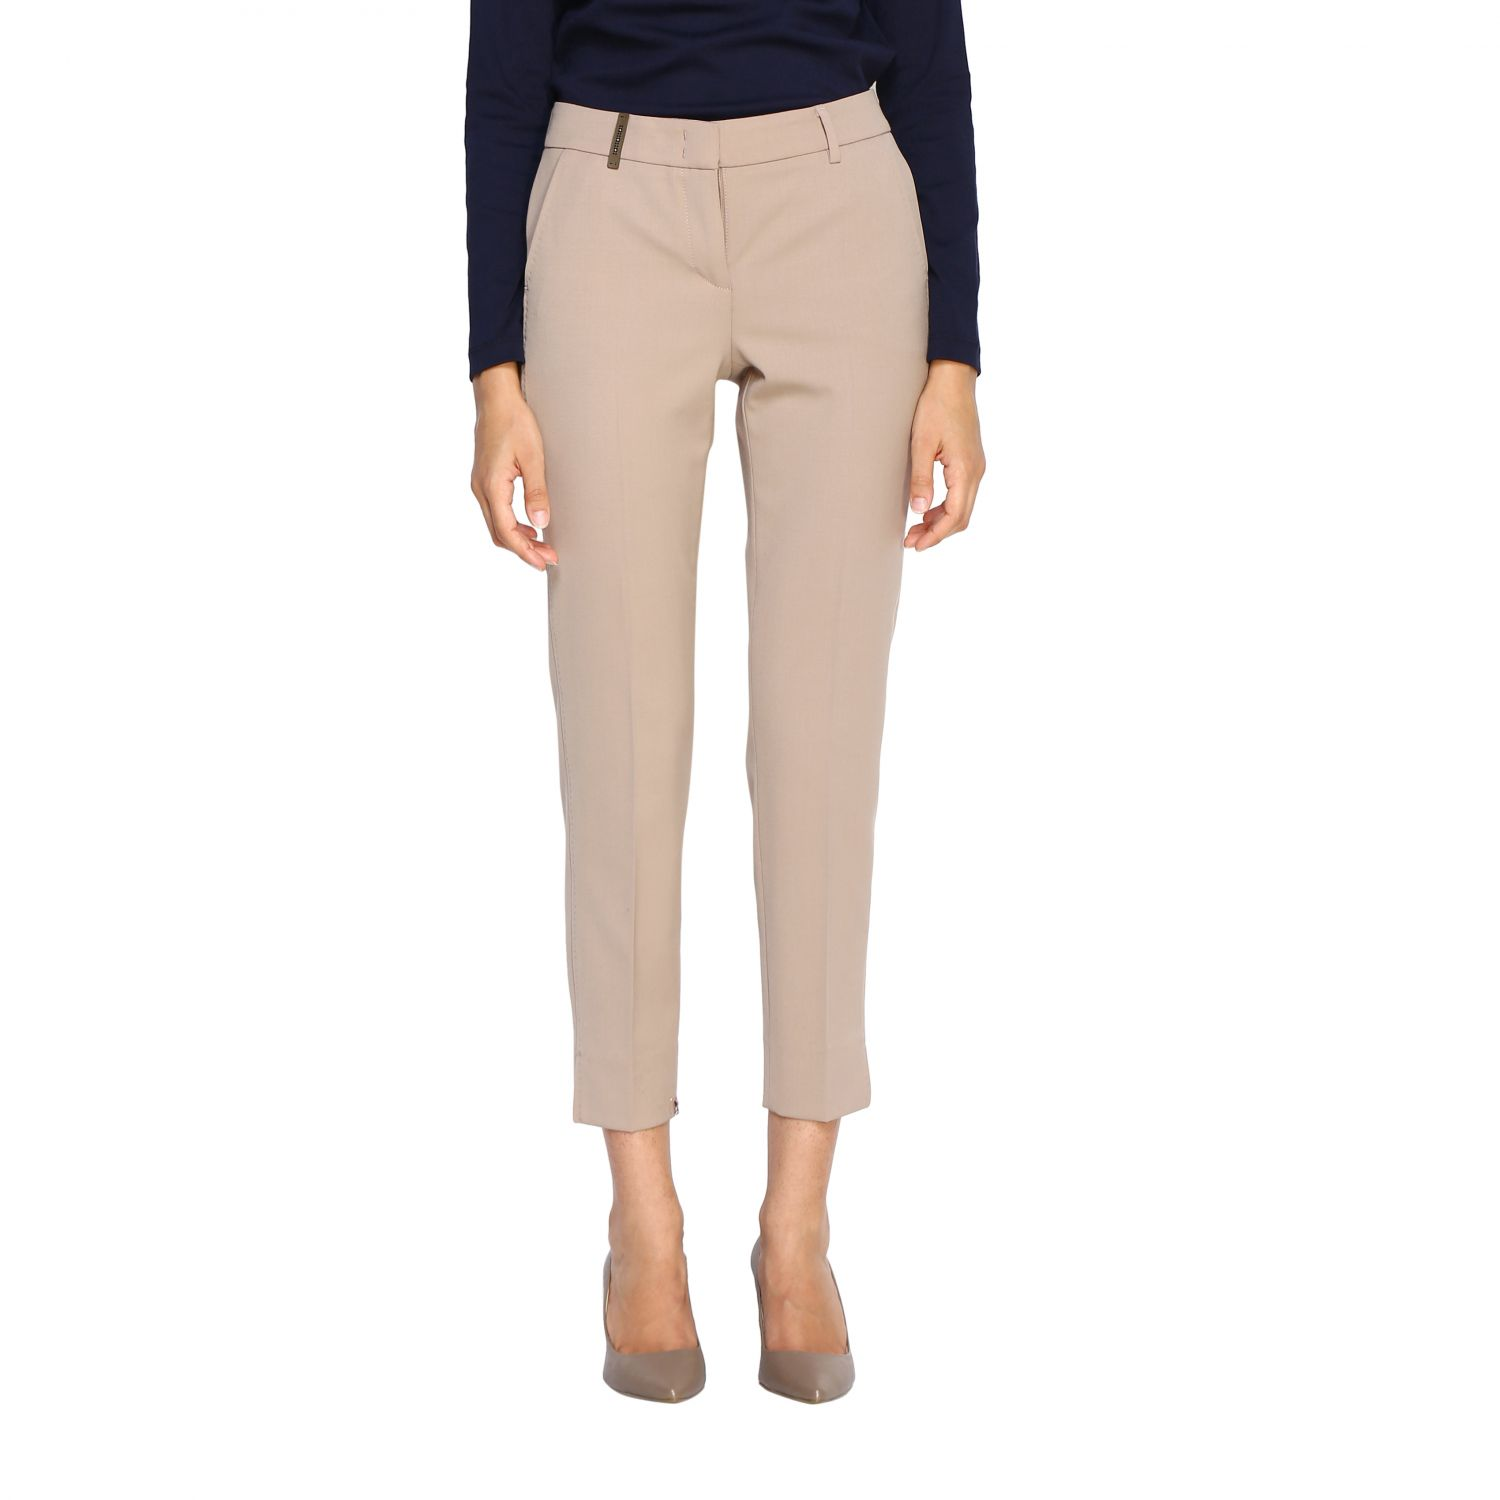 Pants women Peserico hazel 1